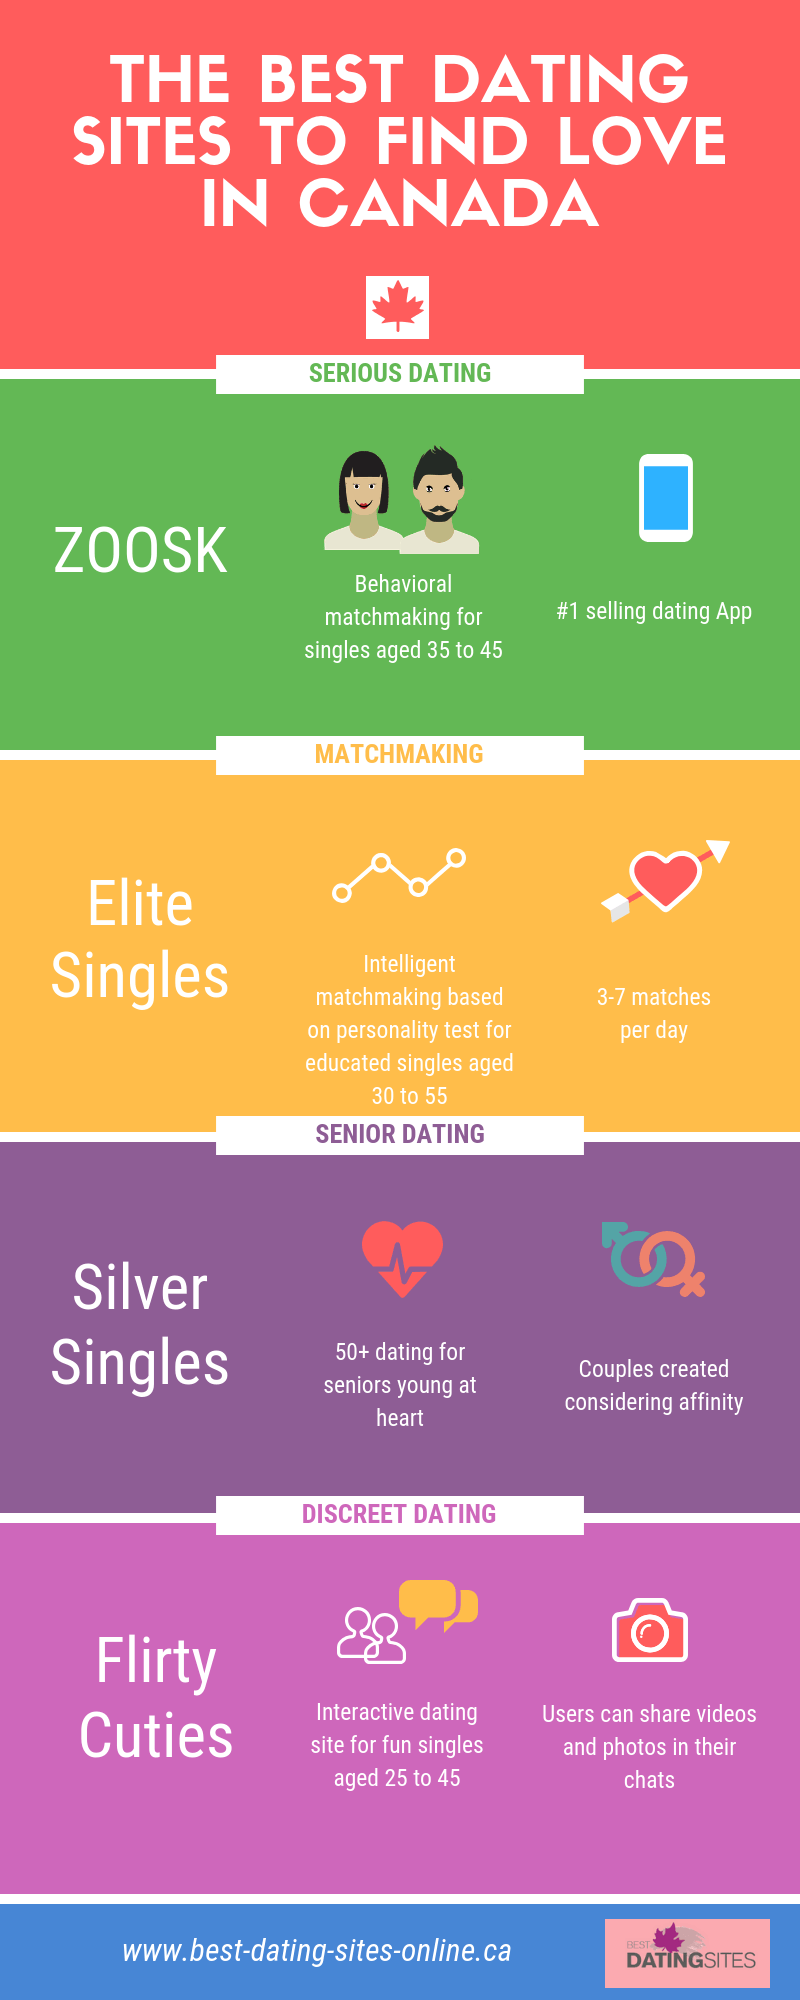 Top dating sites in canada